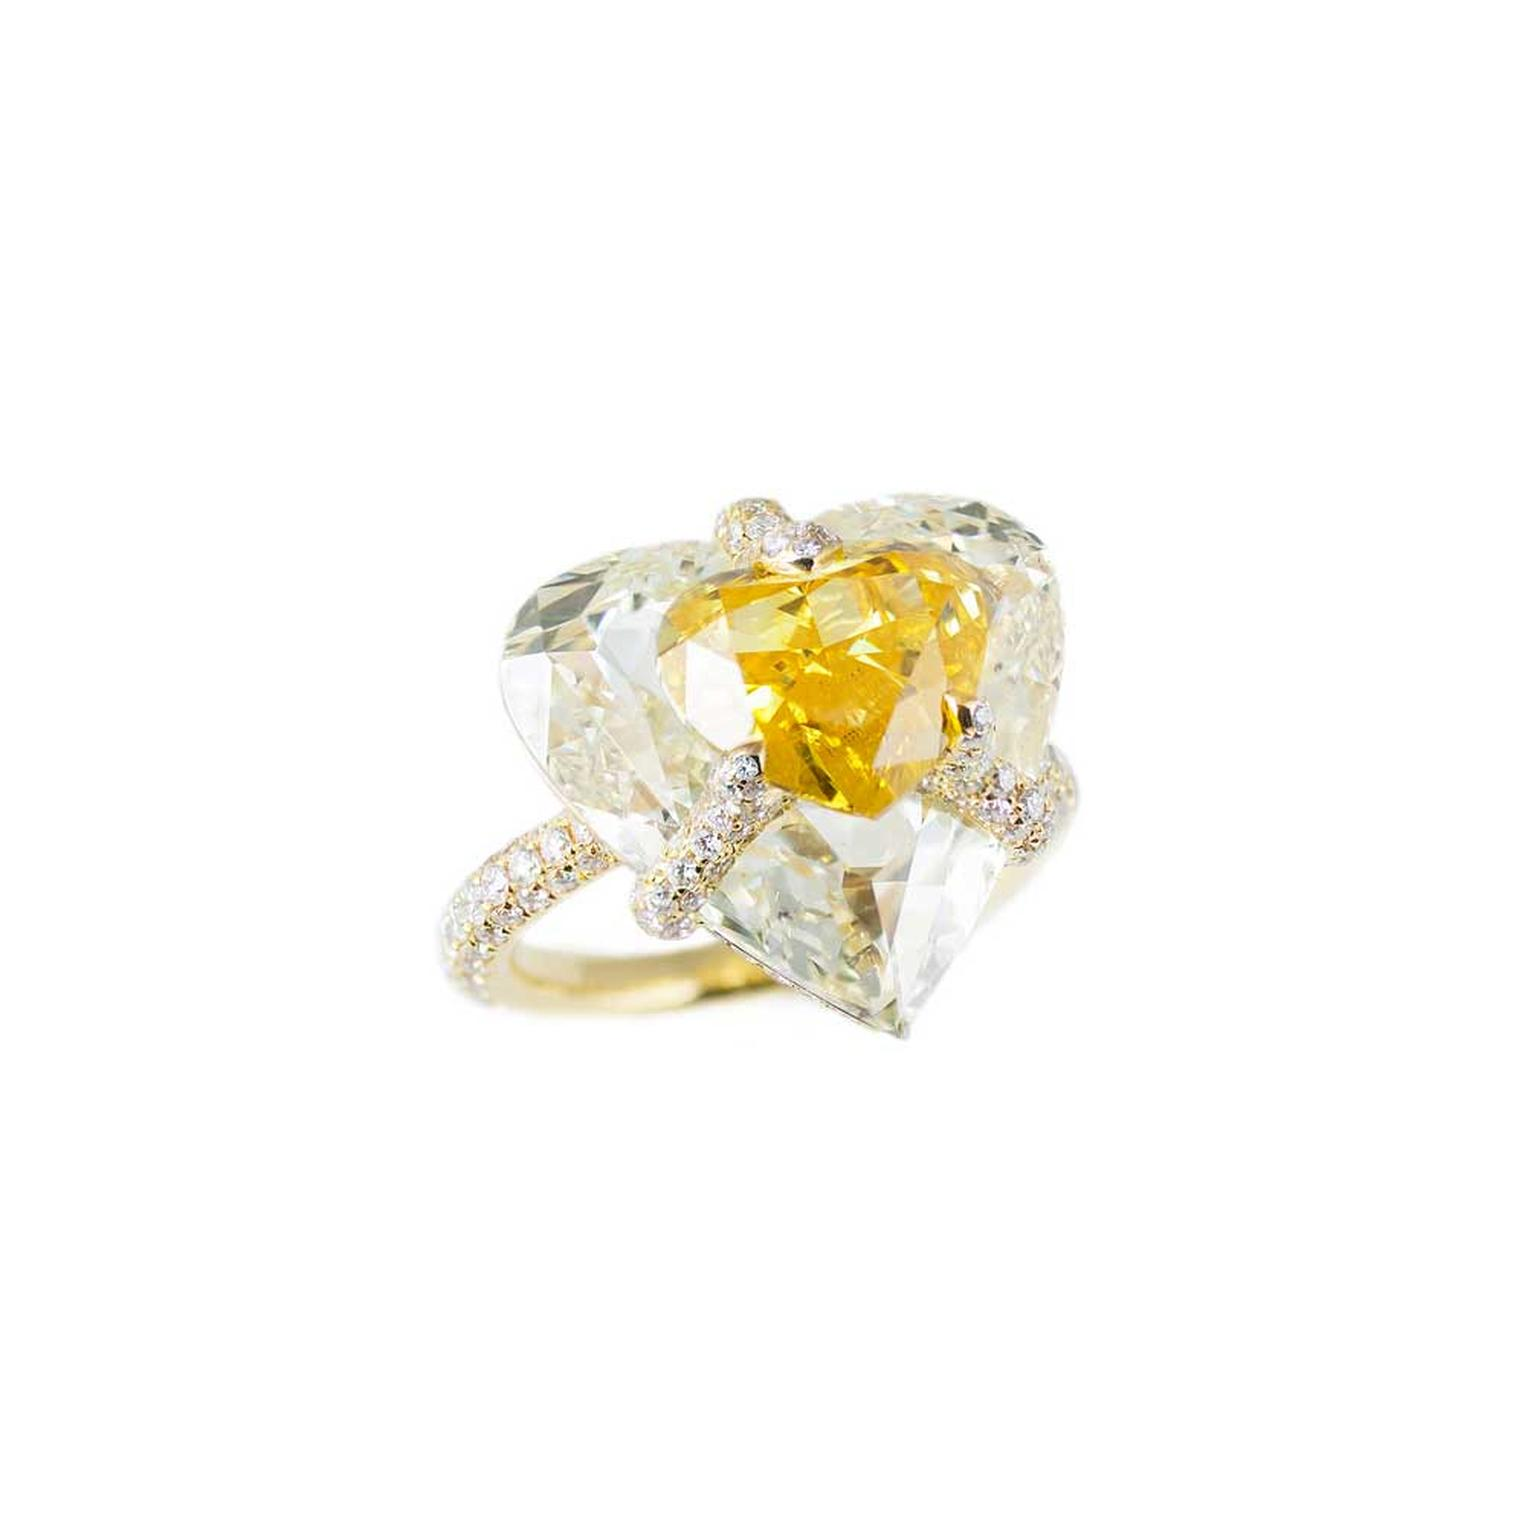 Boghossian Fancy Vivid orangey yellow diamond engagement ring